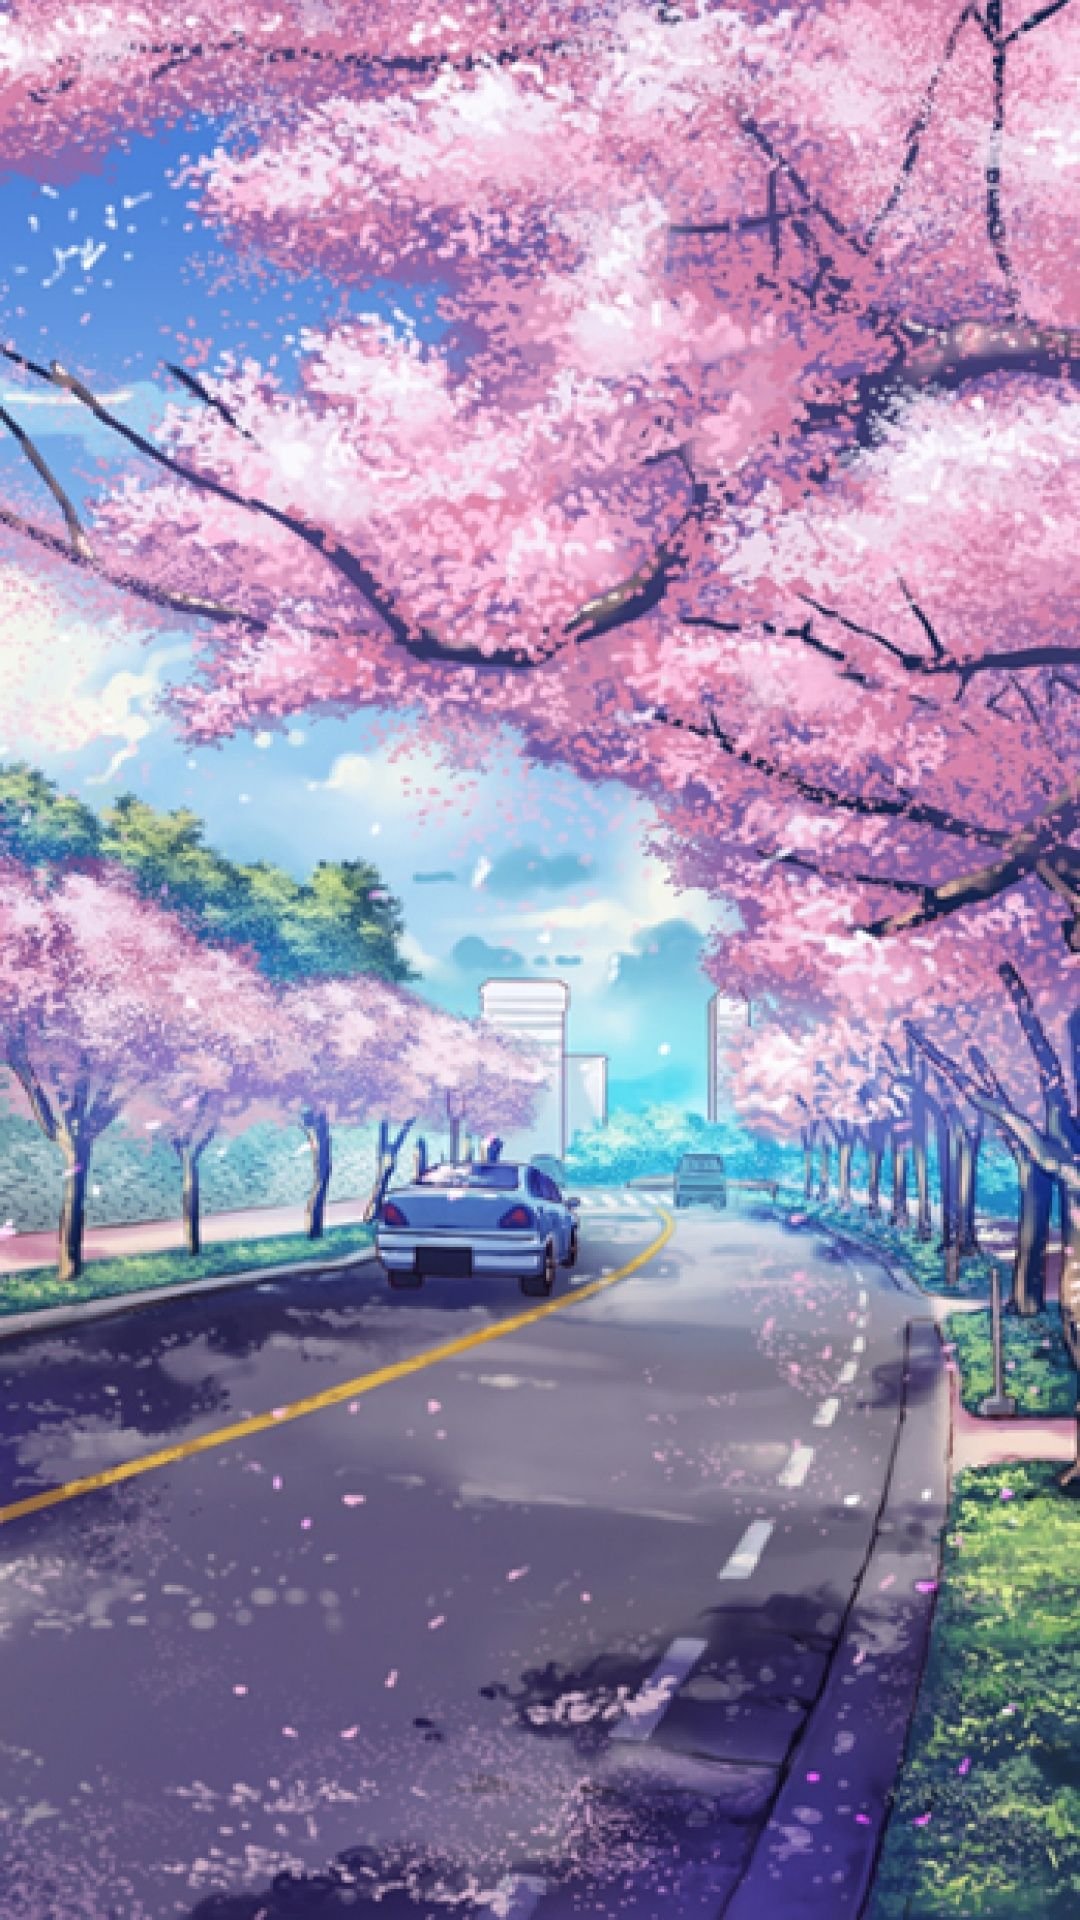 Japanese Anime Scenery Wallpapers - Top Free Japanese ...